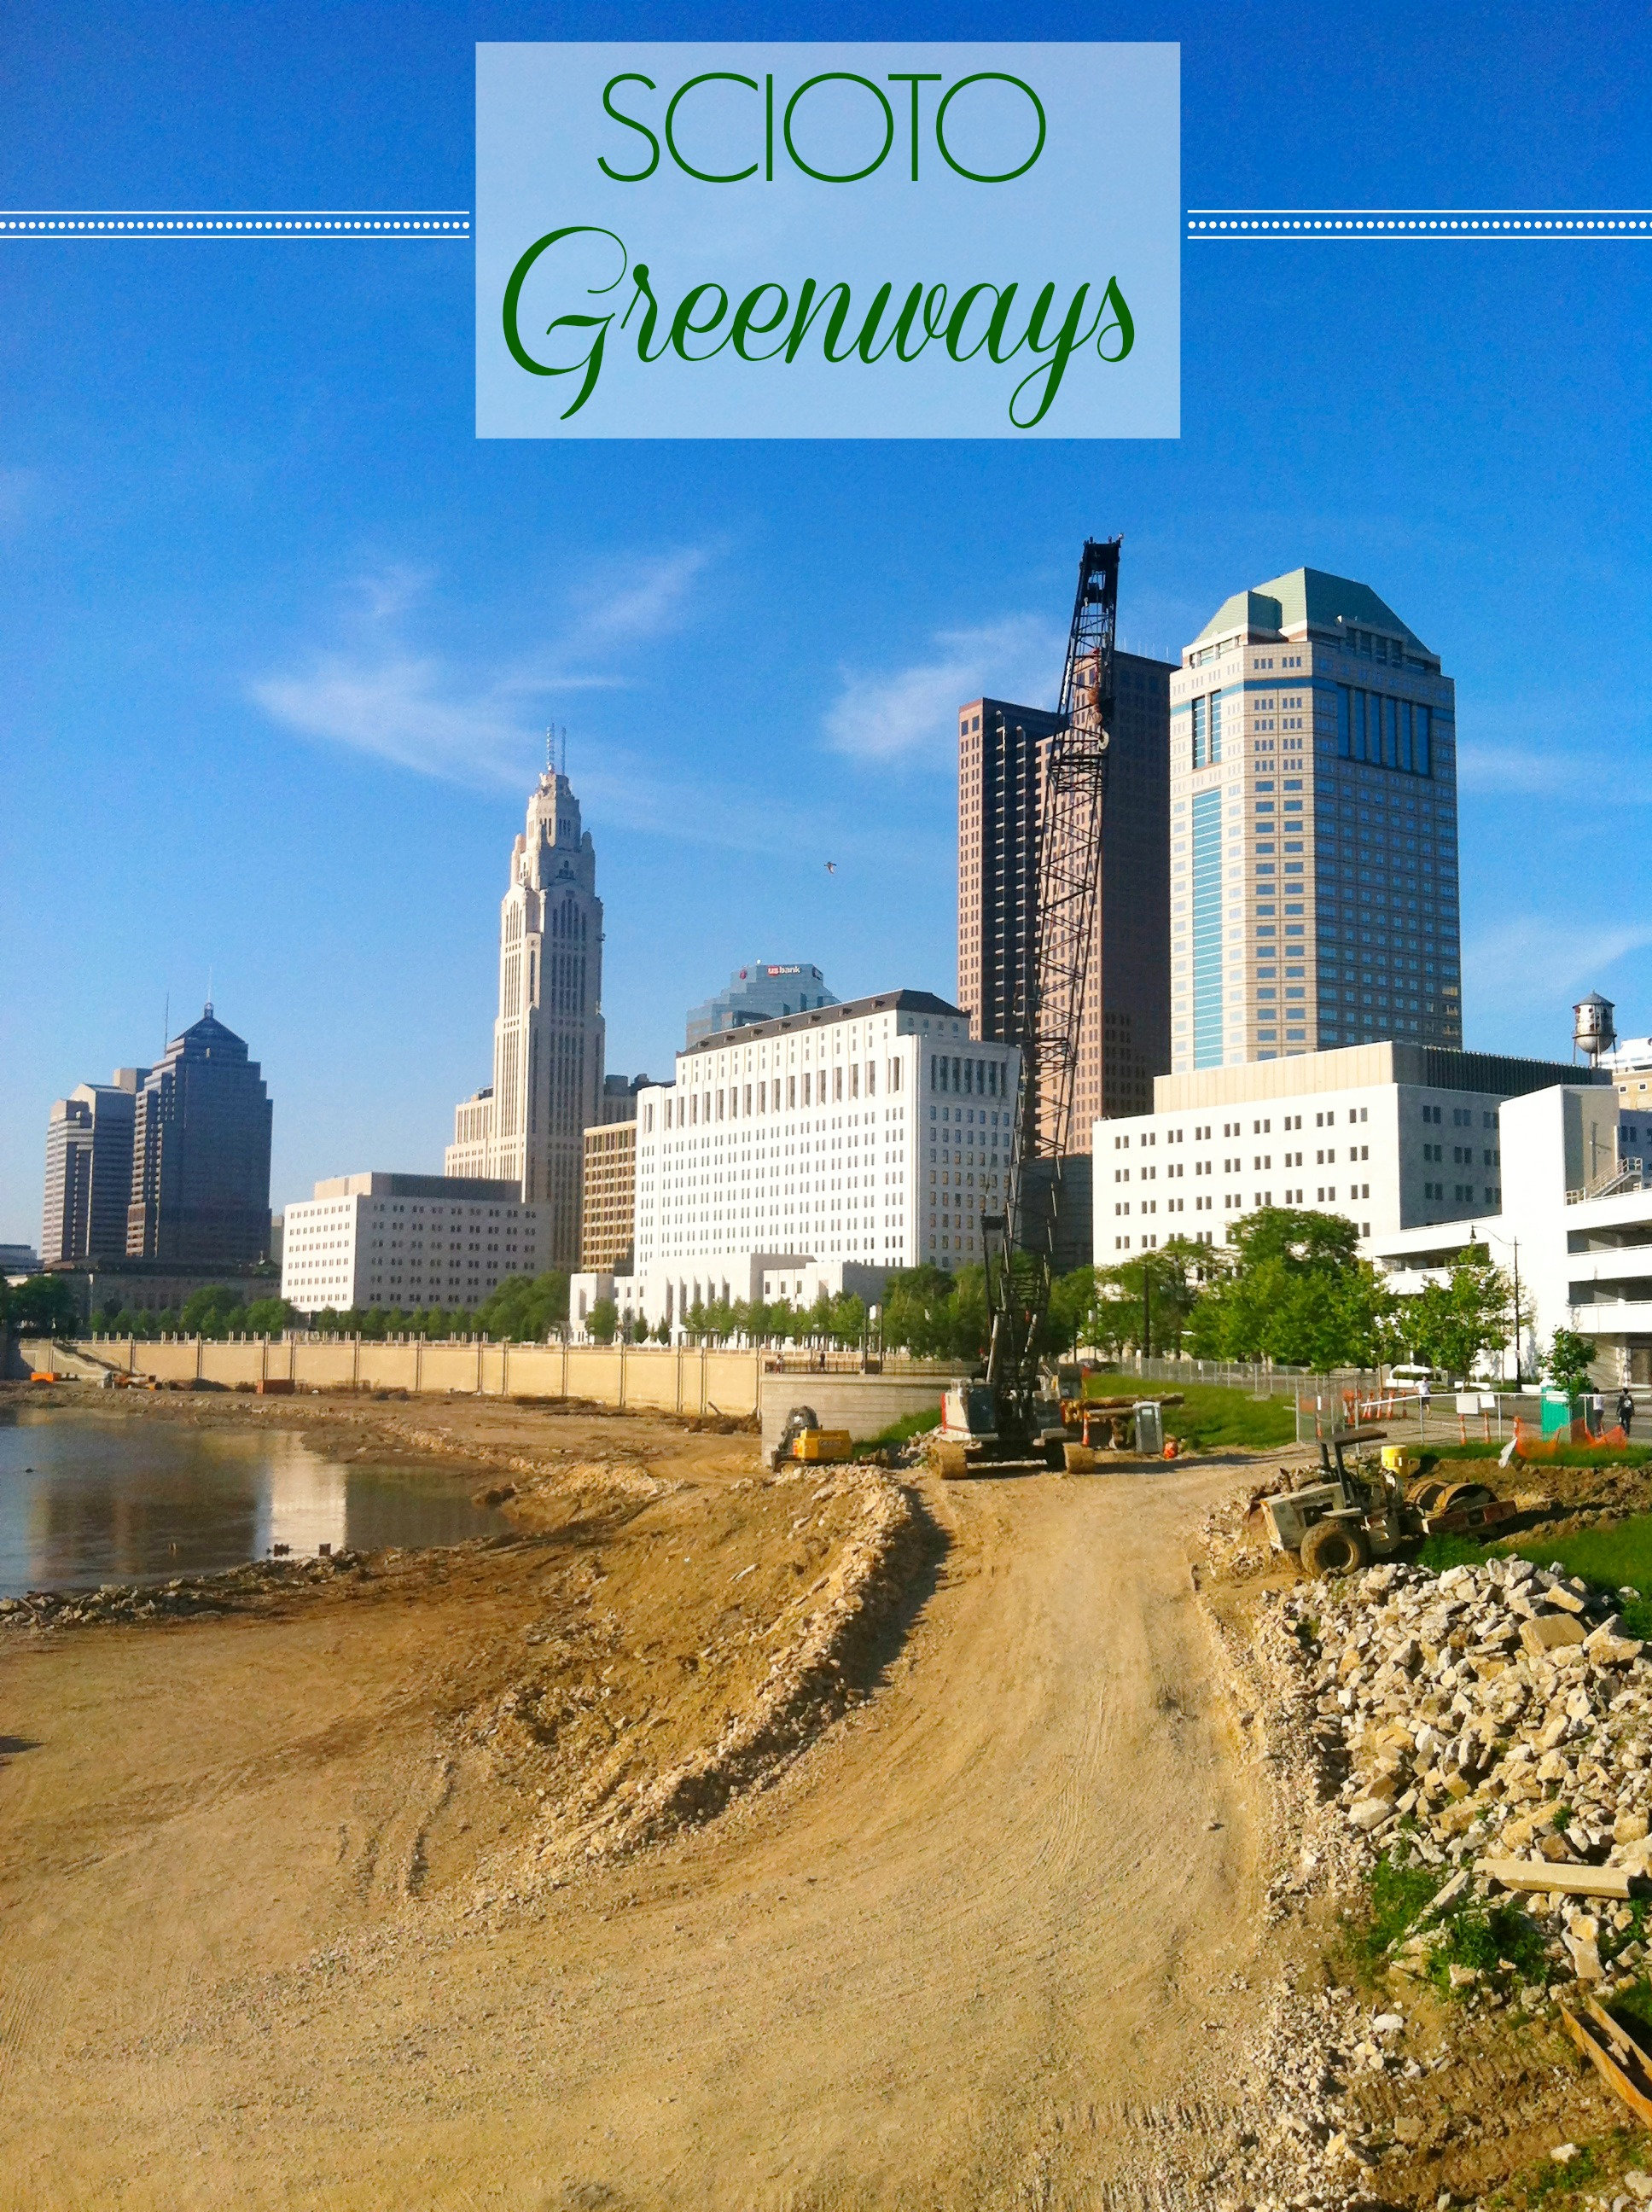 Scioto Greenways | girl about columbus